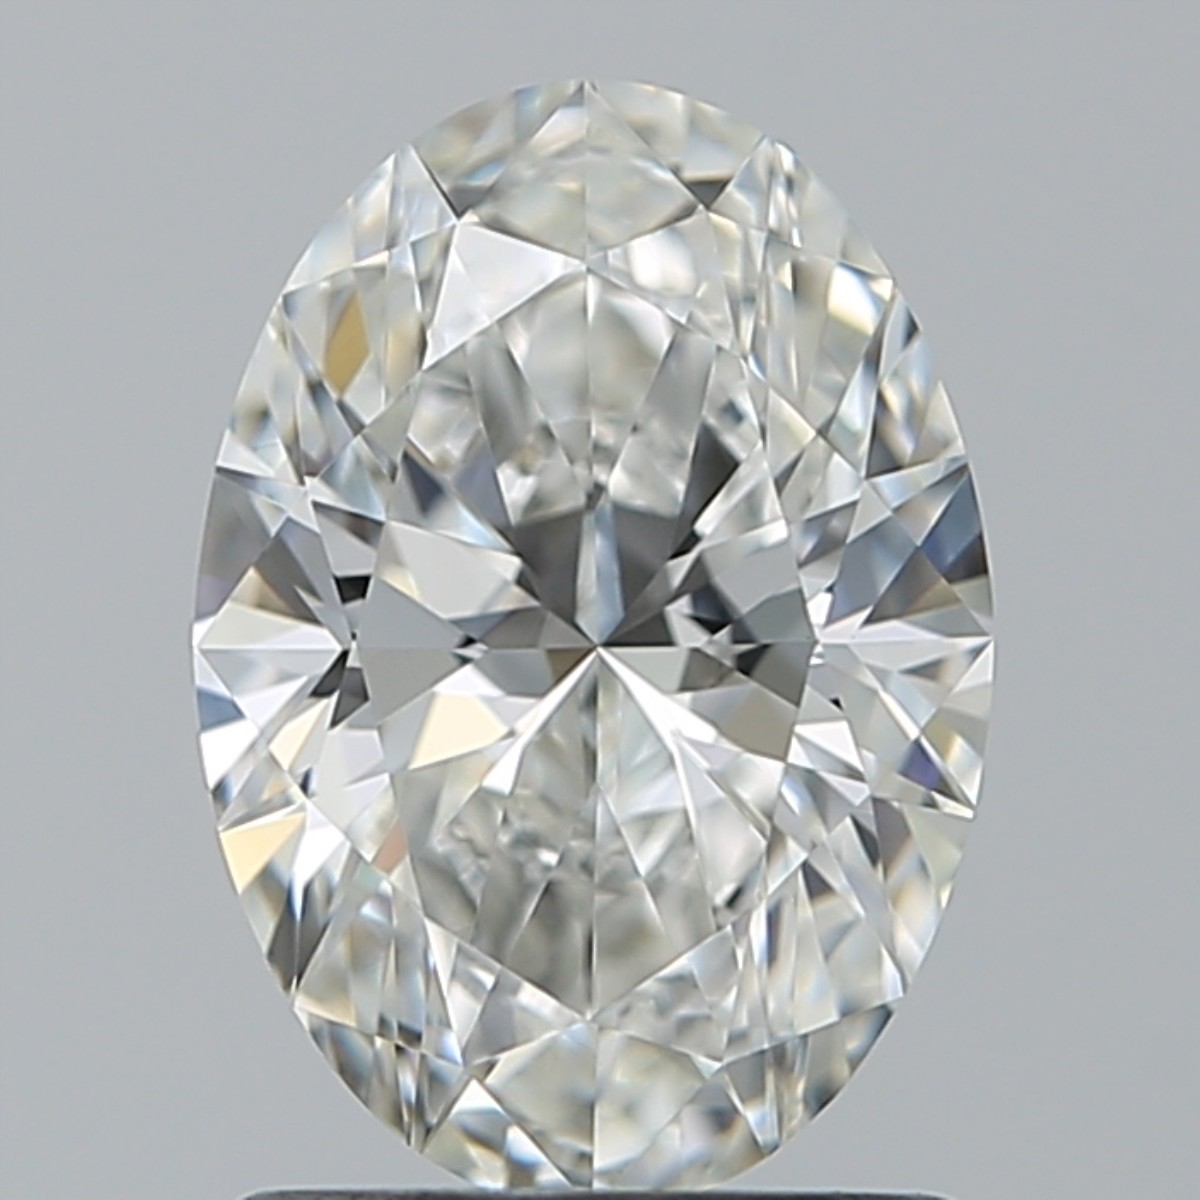 1.27 Carat Oval Diamond (G/VVS2)